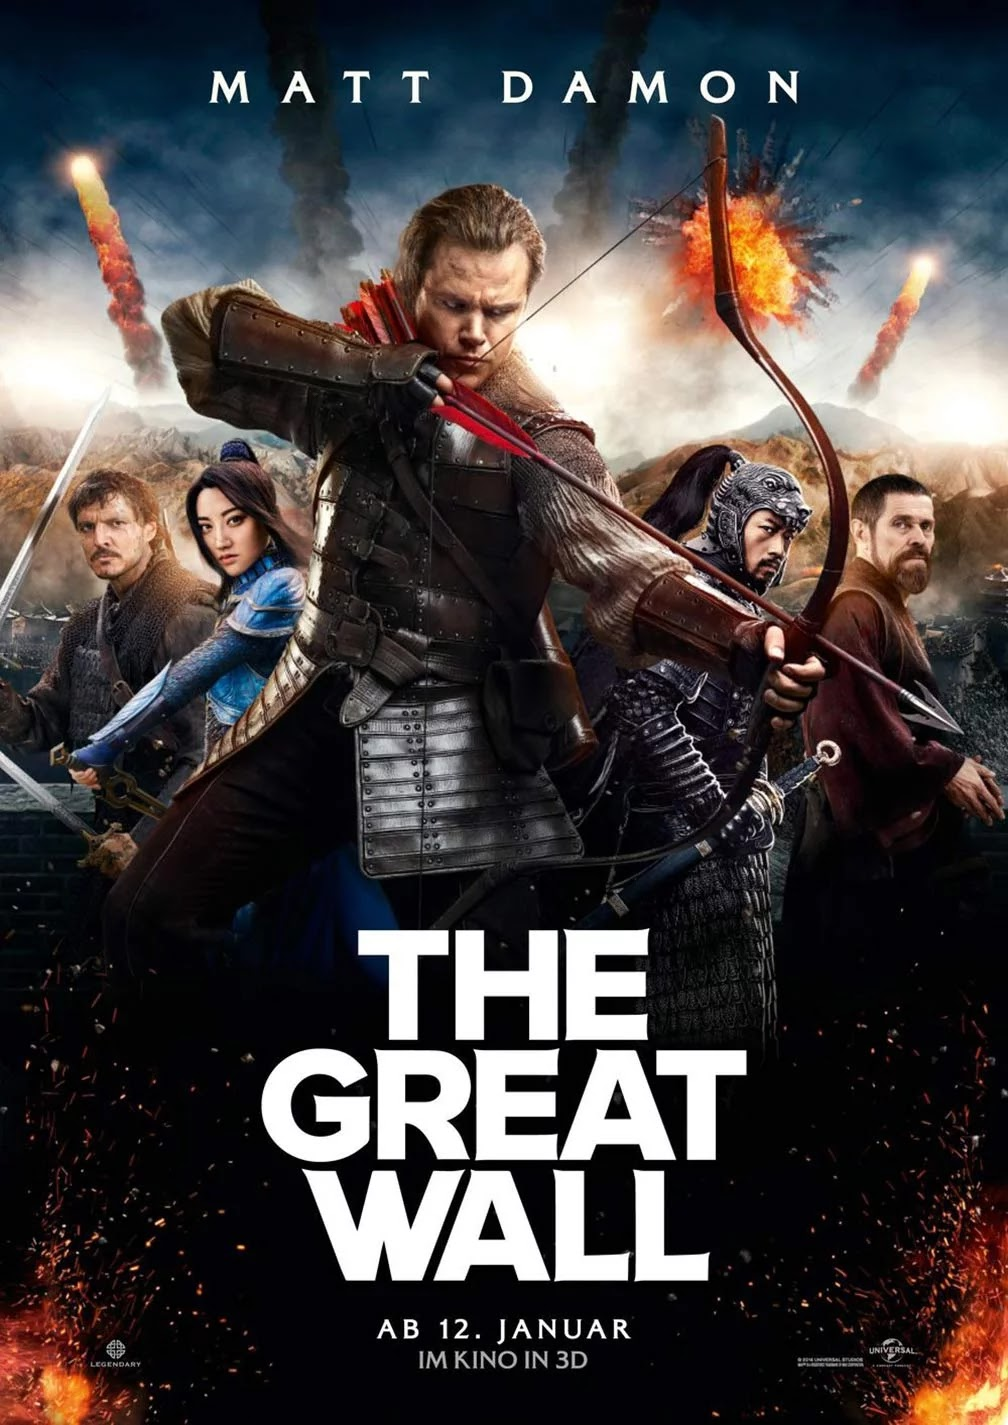 the great wall (2016) full movie download hd | new movie | latest